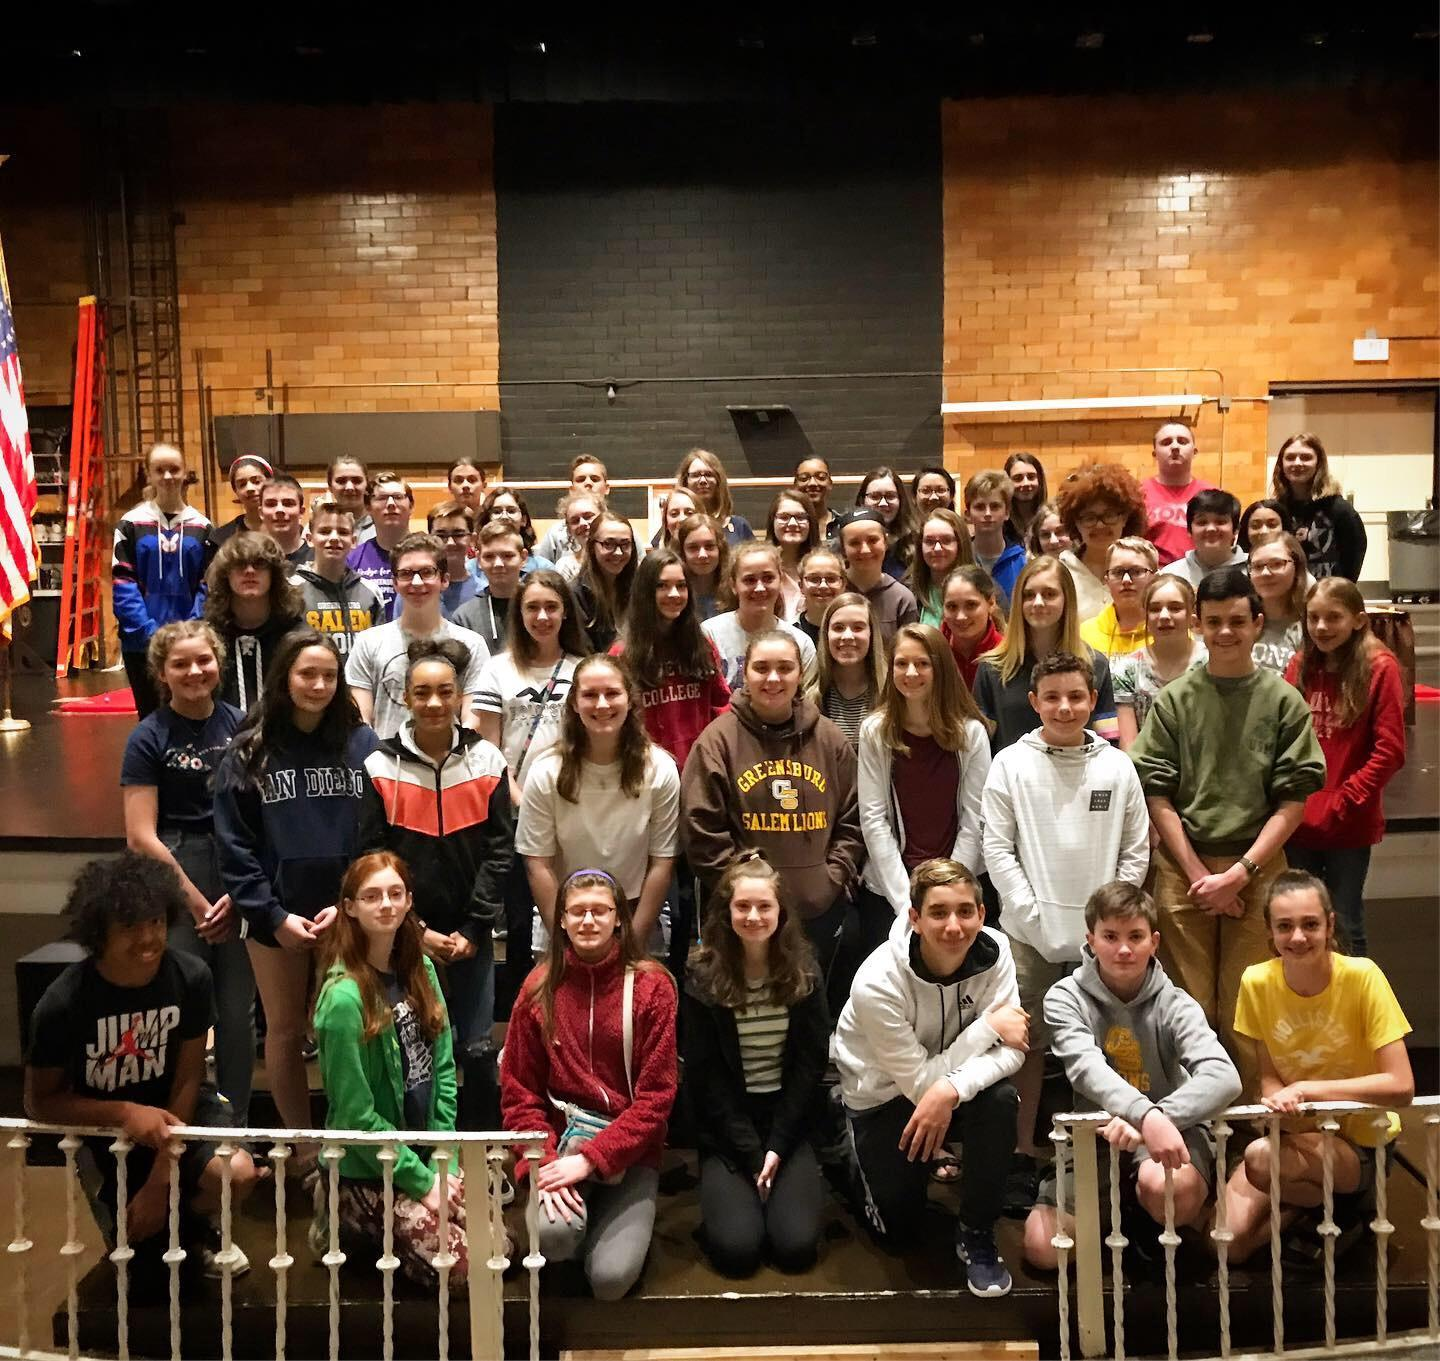 njhs induction practice group picture